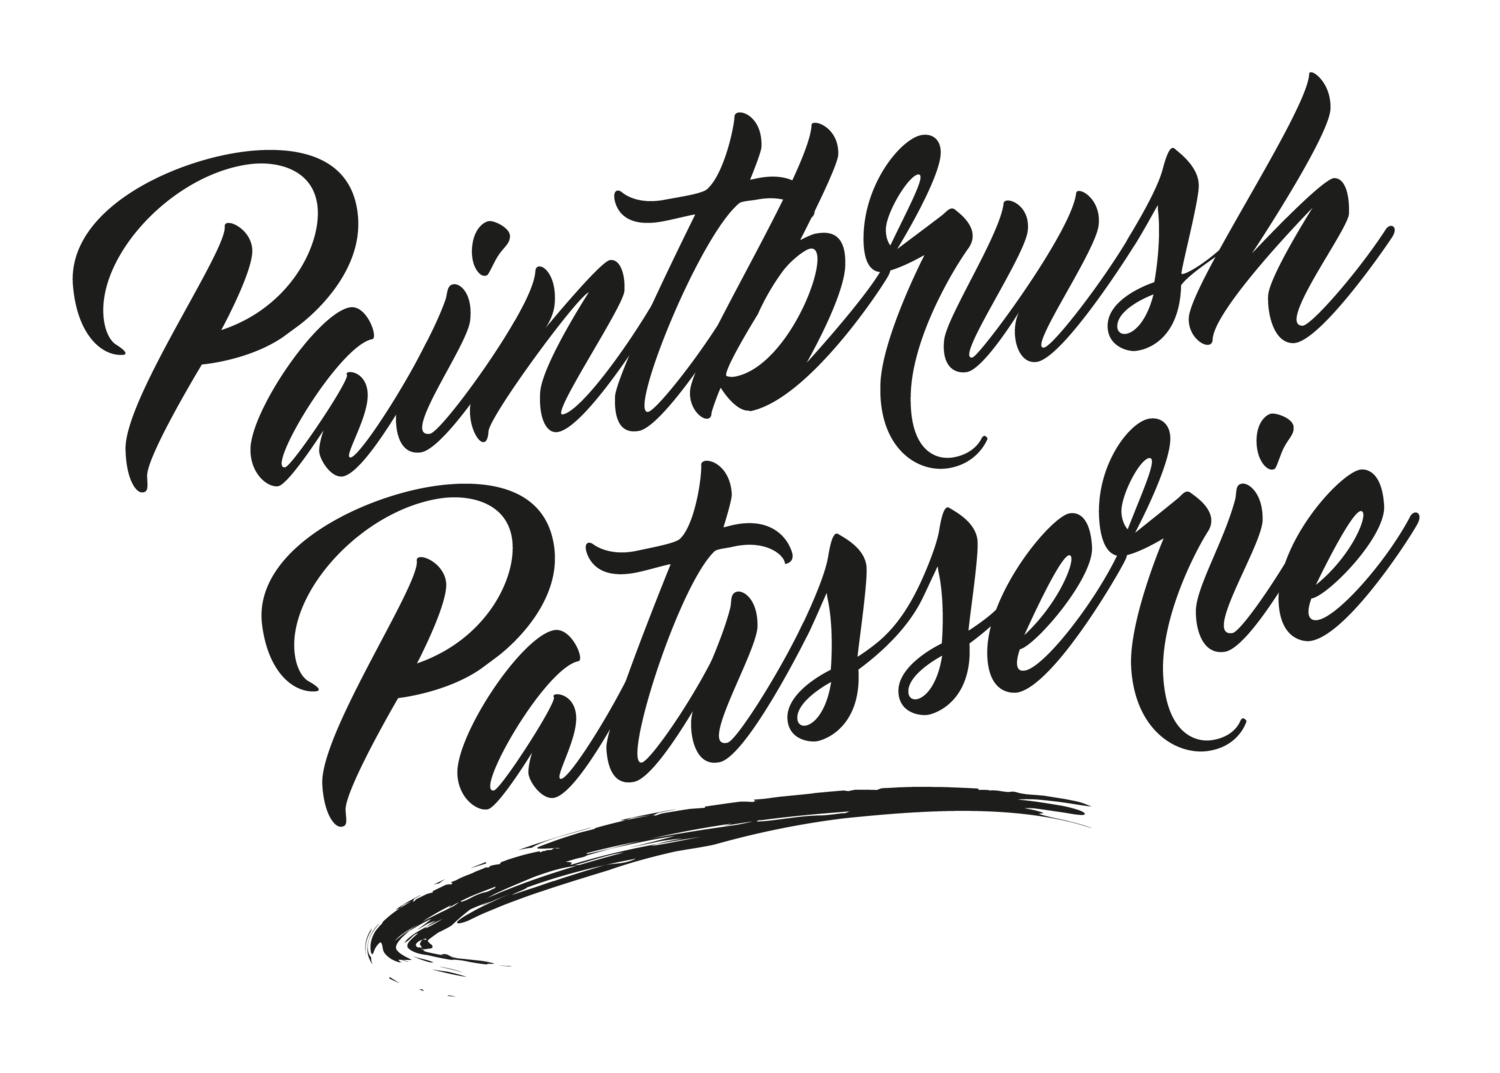 Paintbrush Patisserie